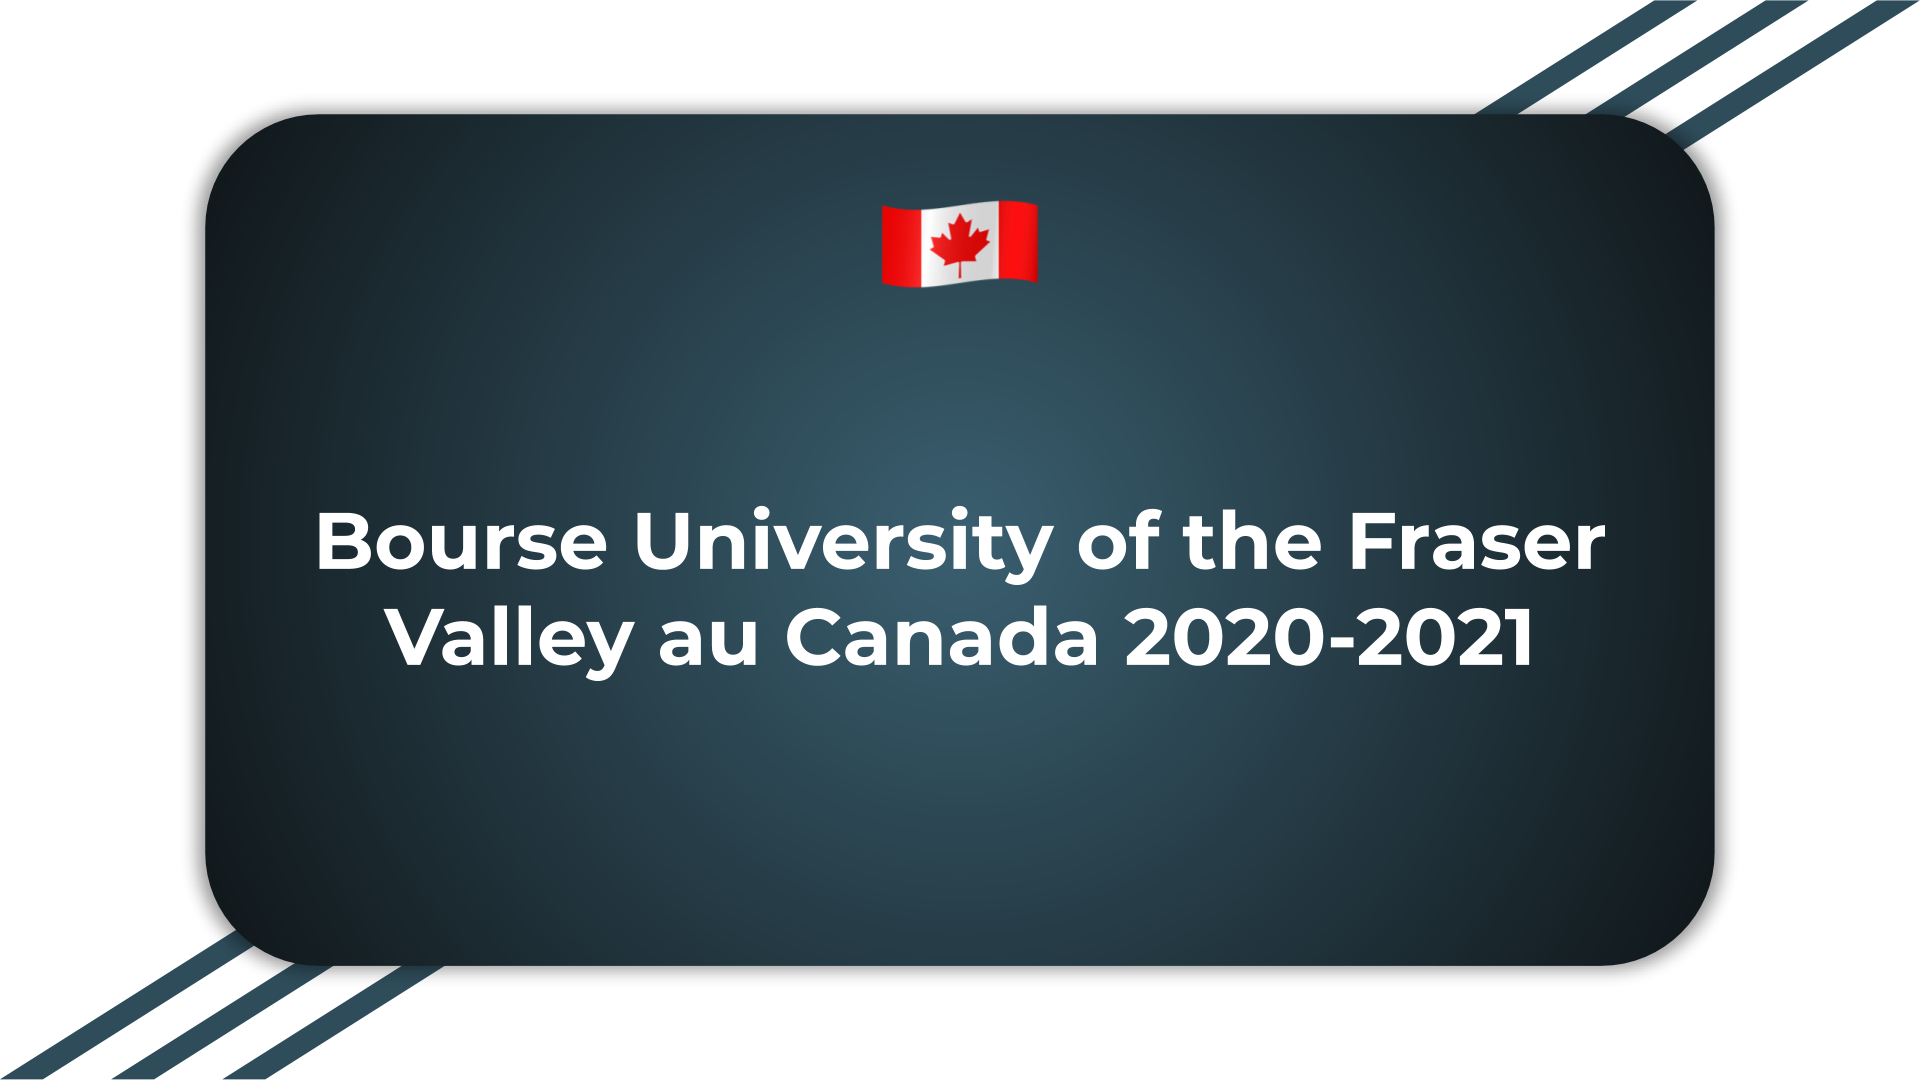 Bourse University of the Fraser Valley au Canada 2020-2021